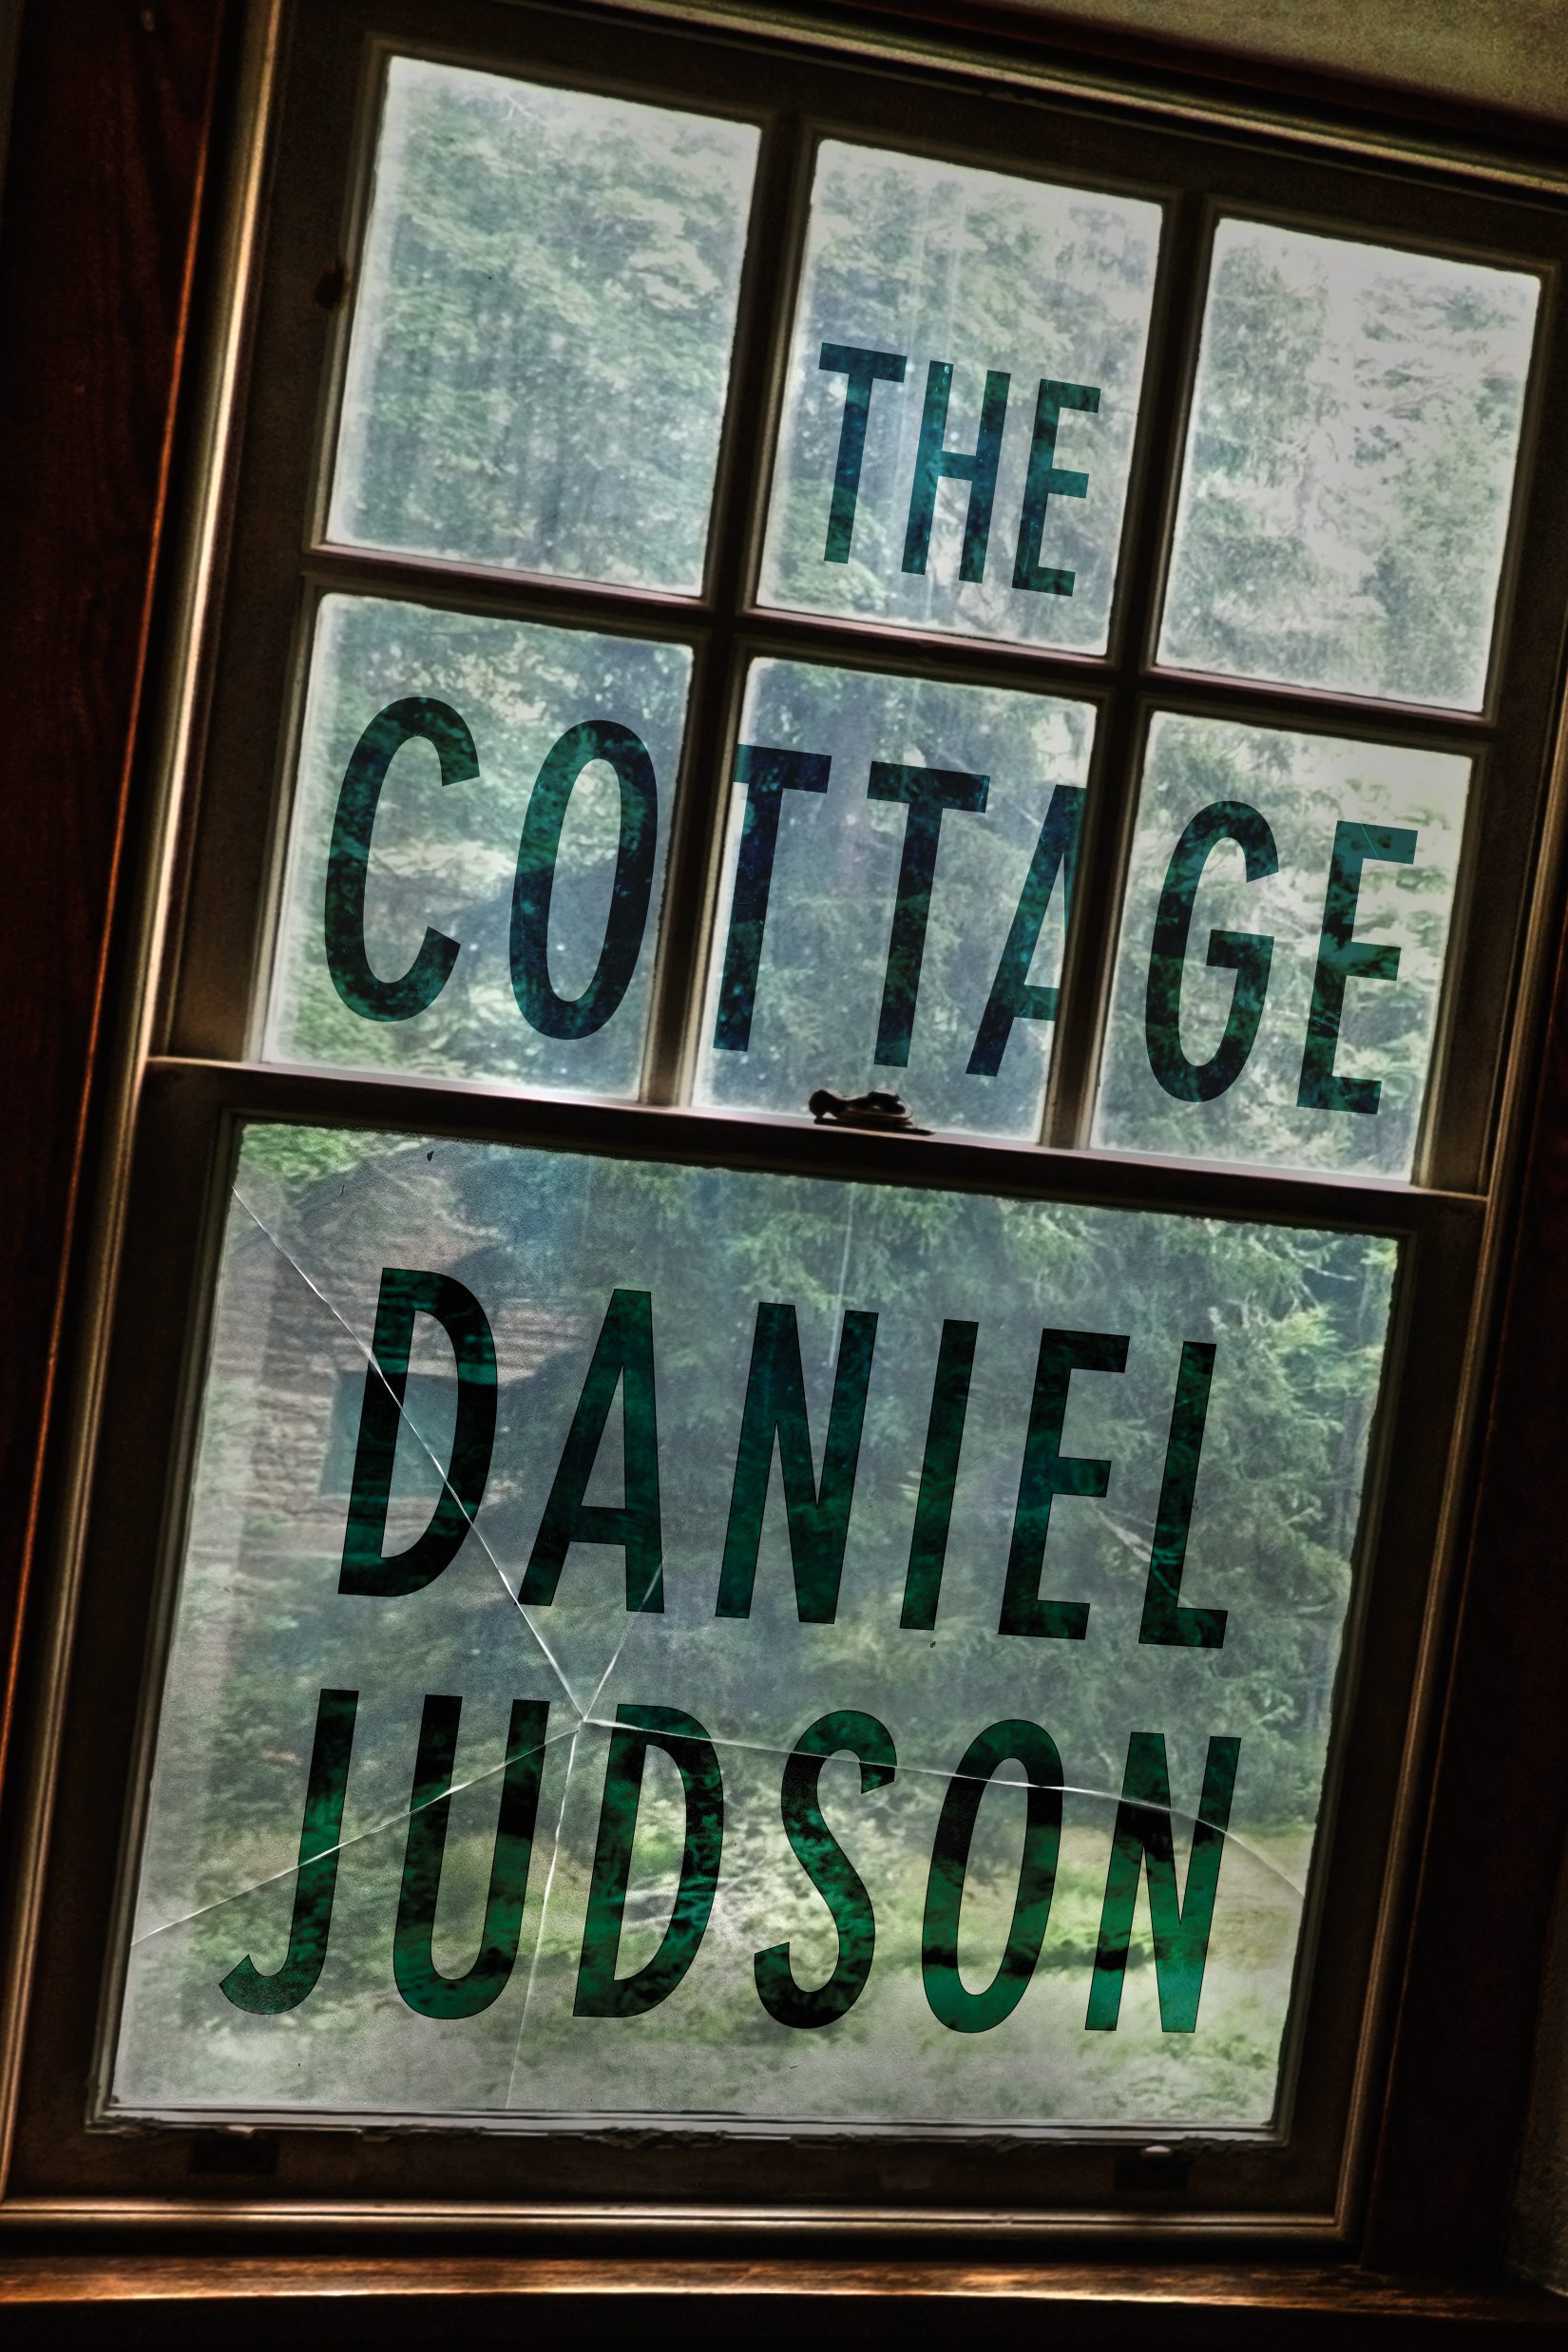 The Cottage Release Date? Daniel Judson 2021 New Book